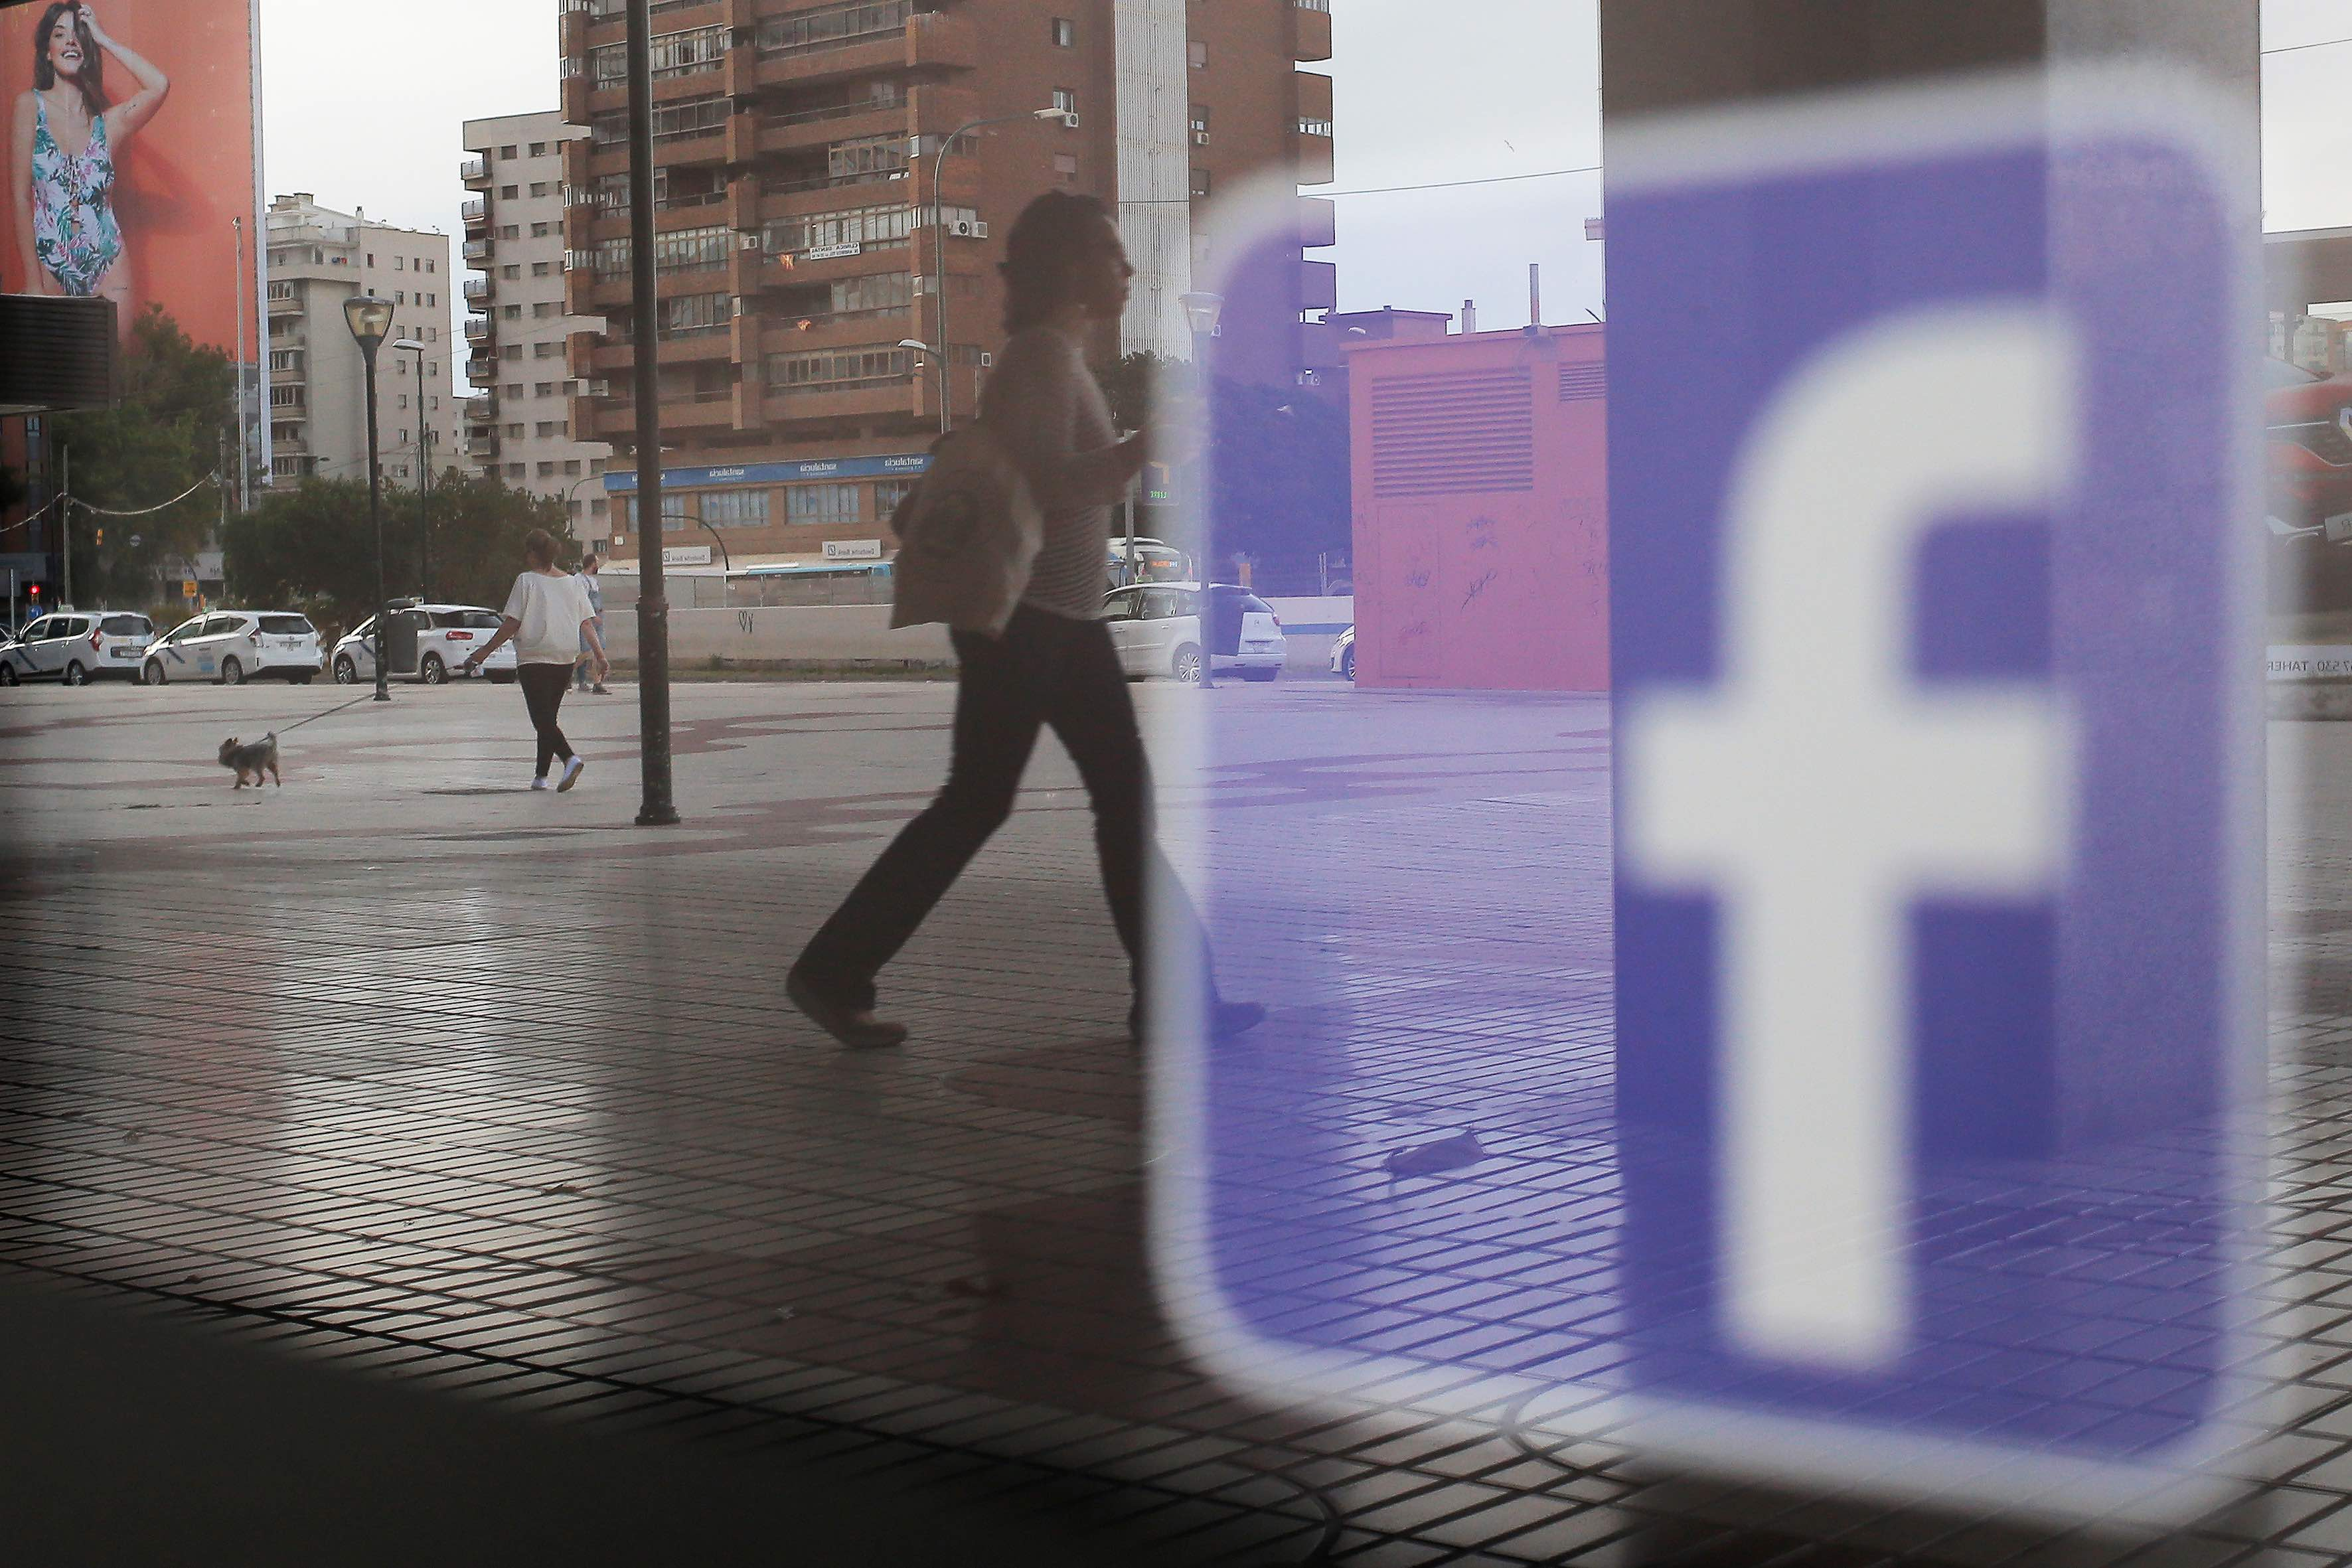 US Lawmakers Slam Facebook Over Data Sharing With Chinese Firms